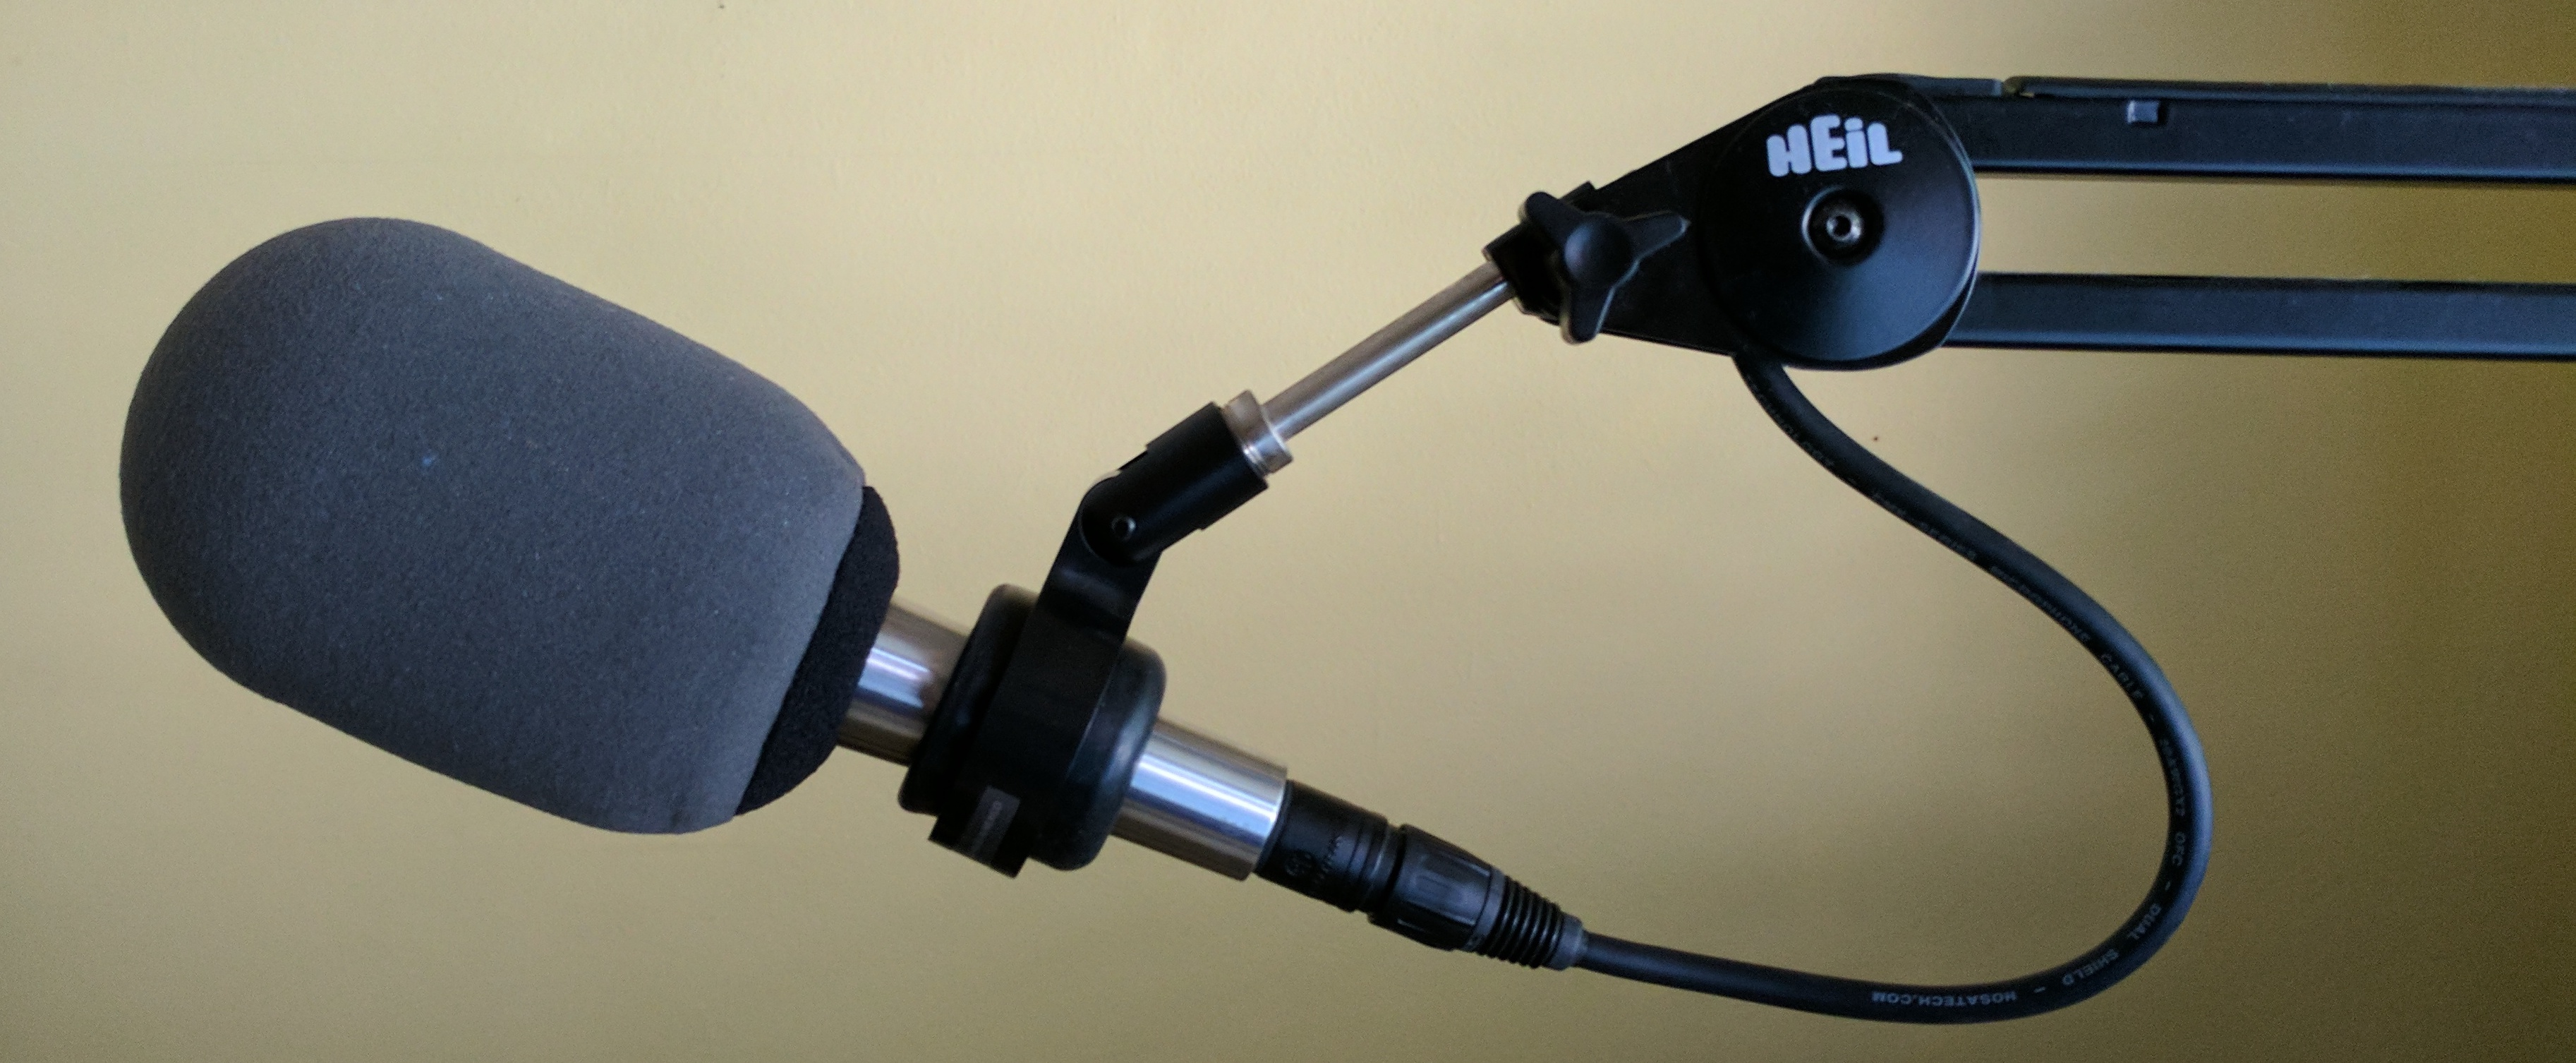 Shure 545 hung and dressed